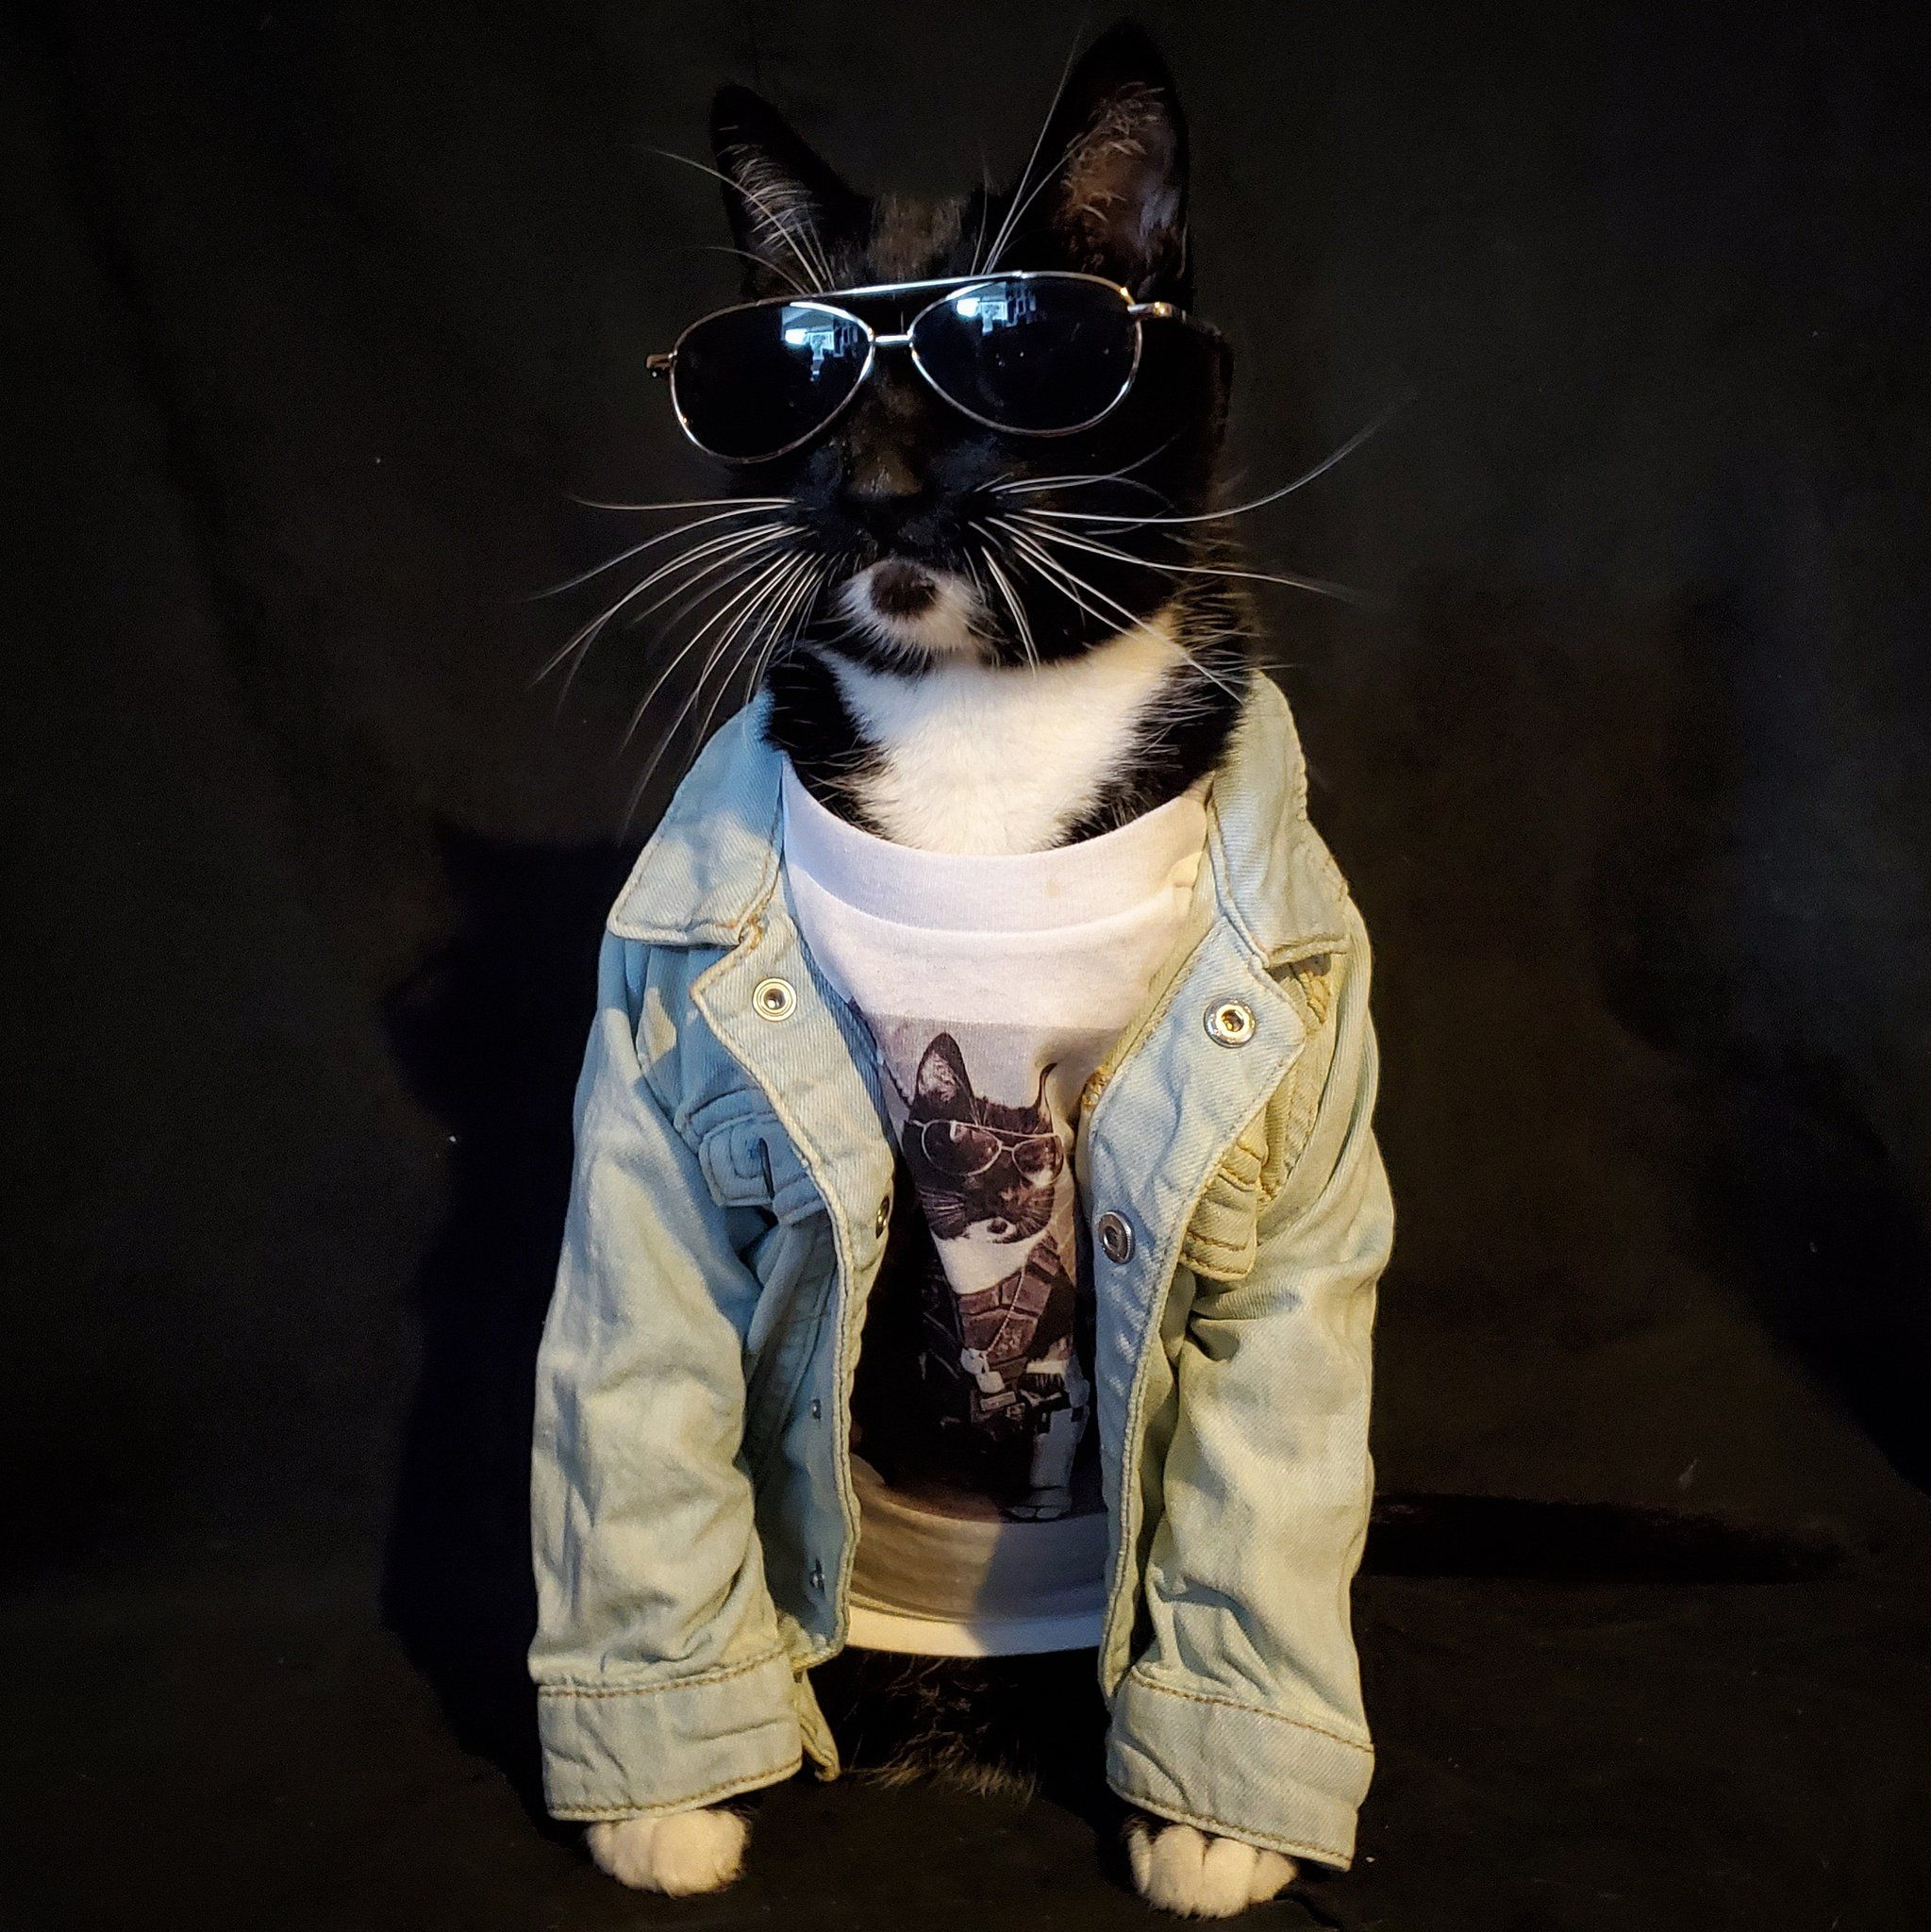 Cat Cosplay on Twitter: